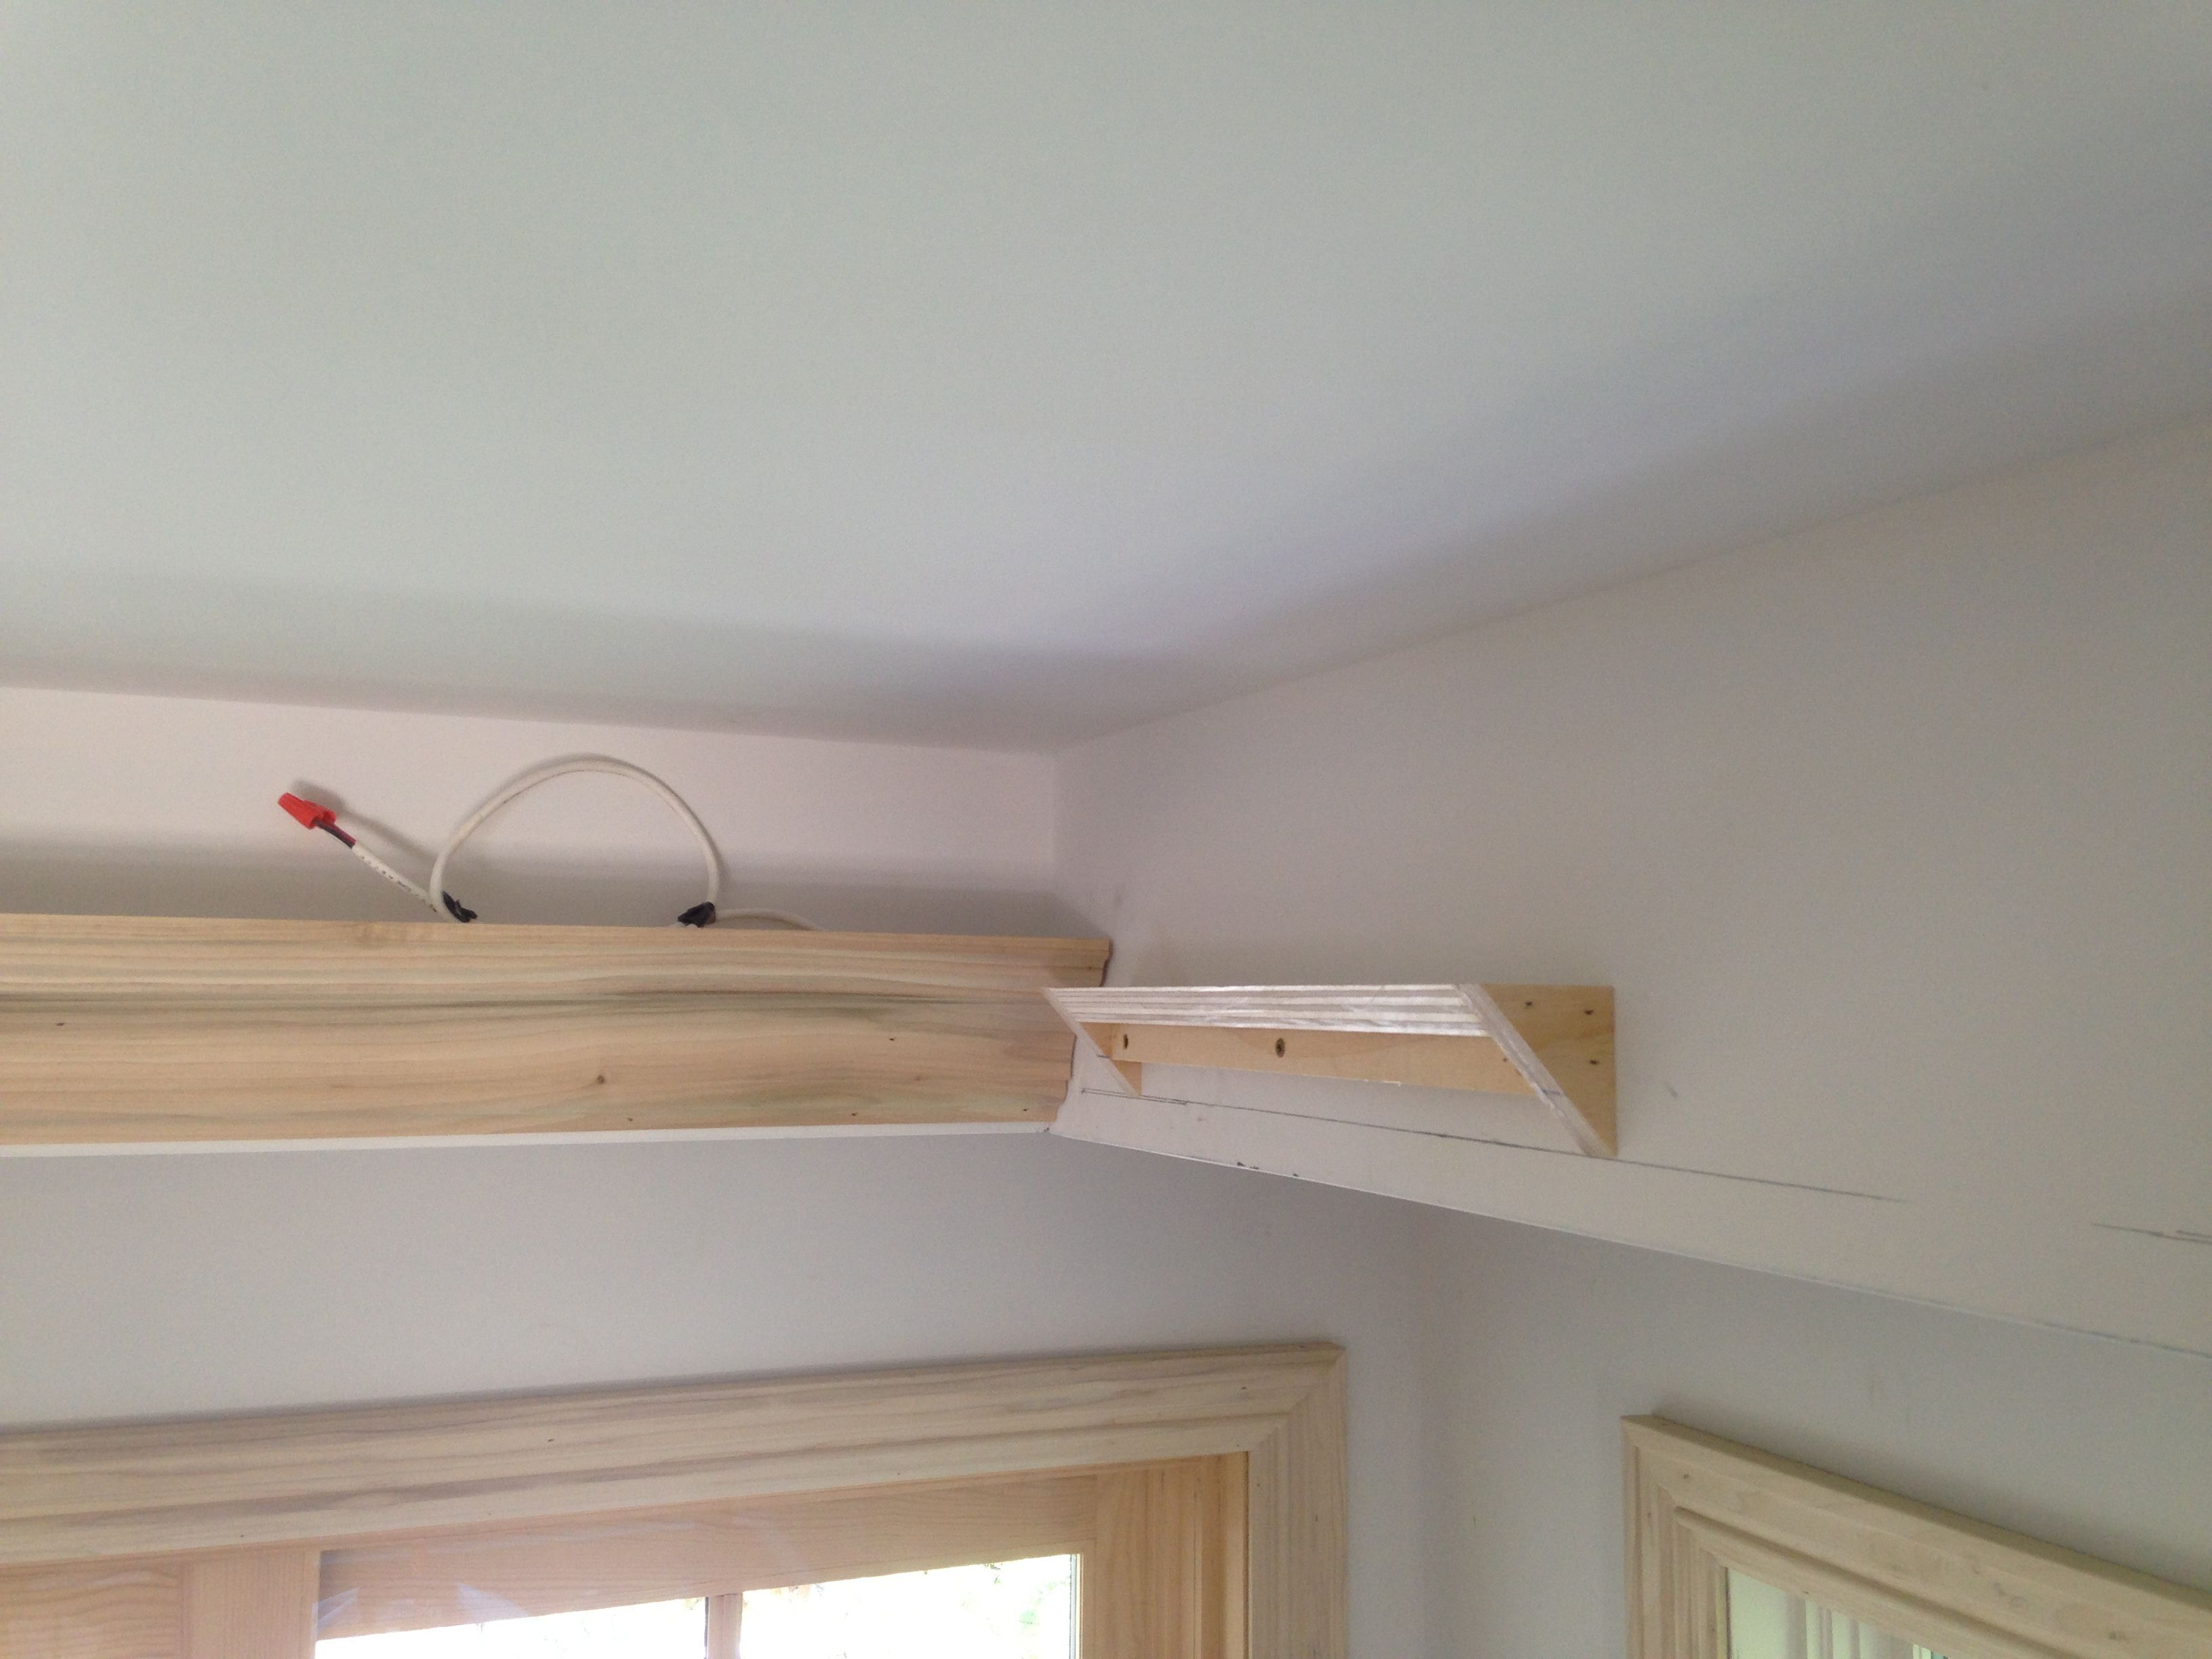 Installing crown molding light valance | DIY HOUSE FIX-ITS ...